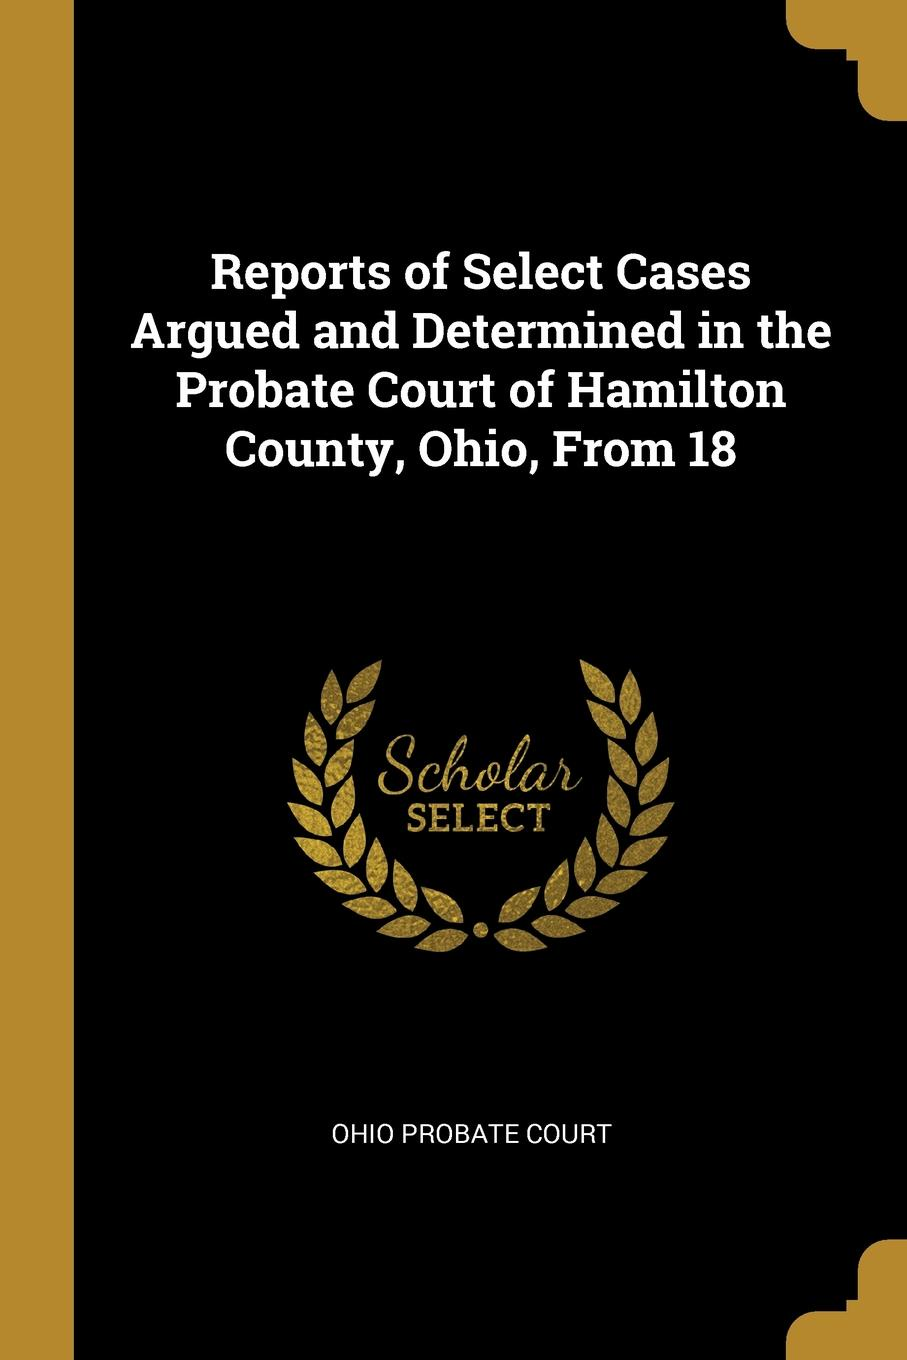 Ohio Probate Court Reports of Select Cases Argued and Determined in the Probate Court of Hamilton County, Ohio, From 18